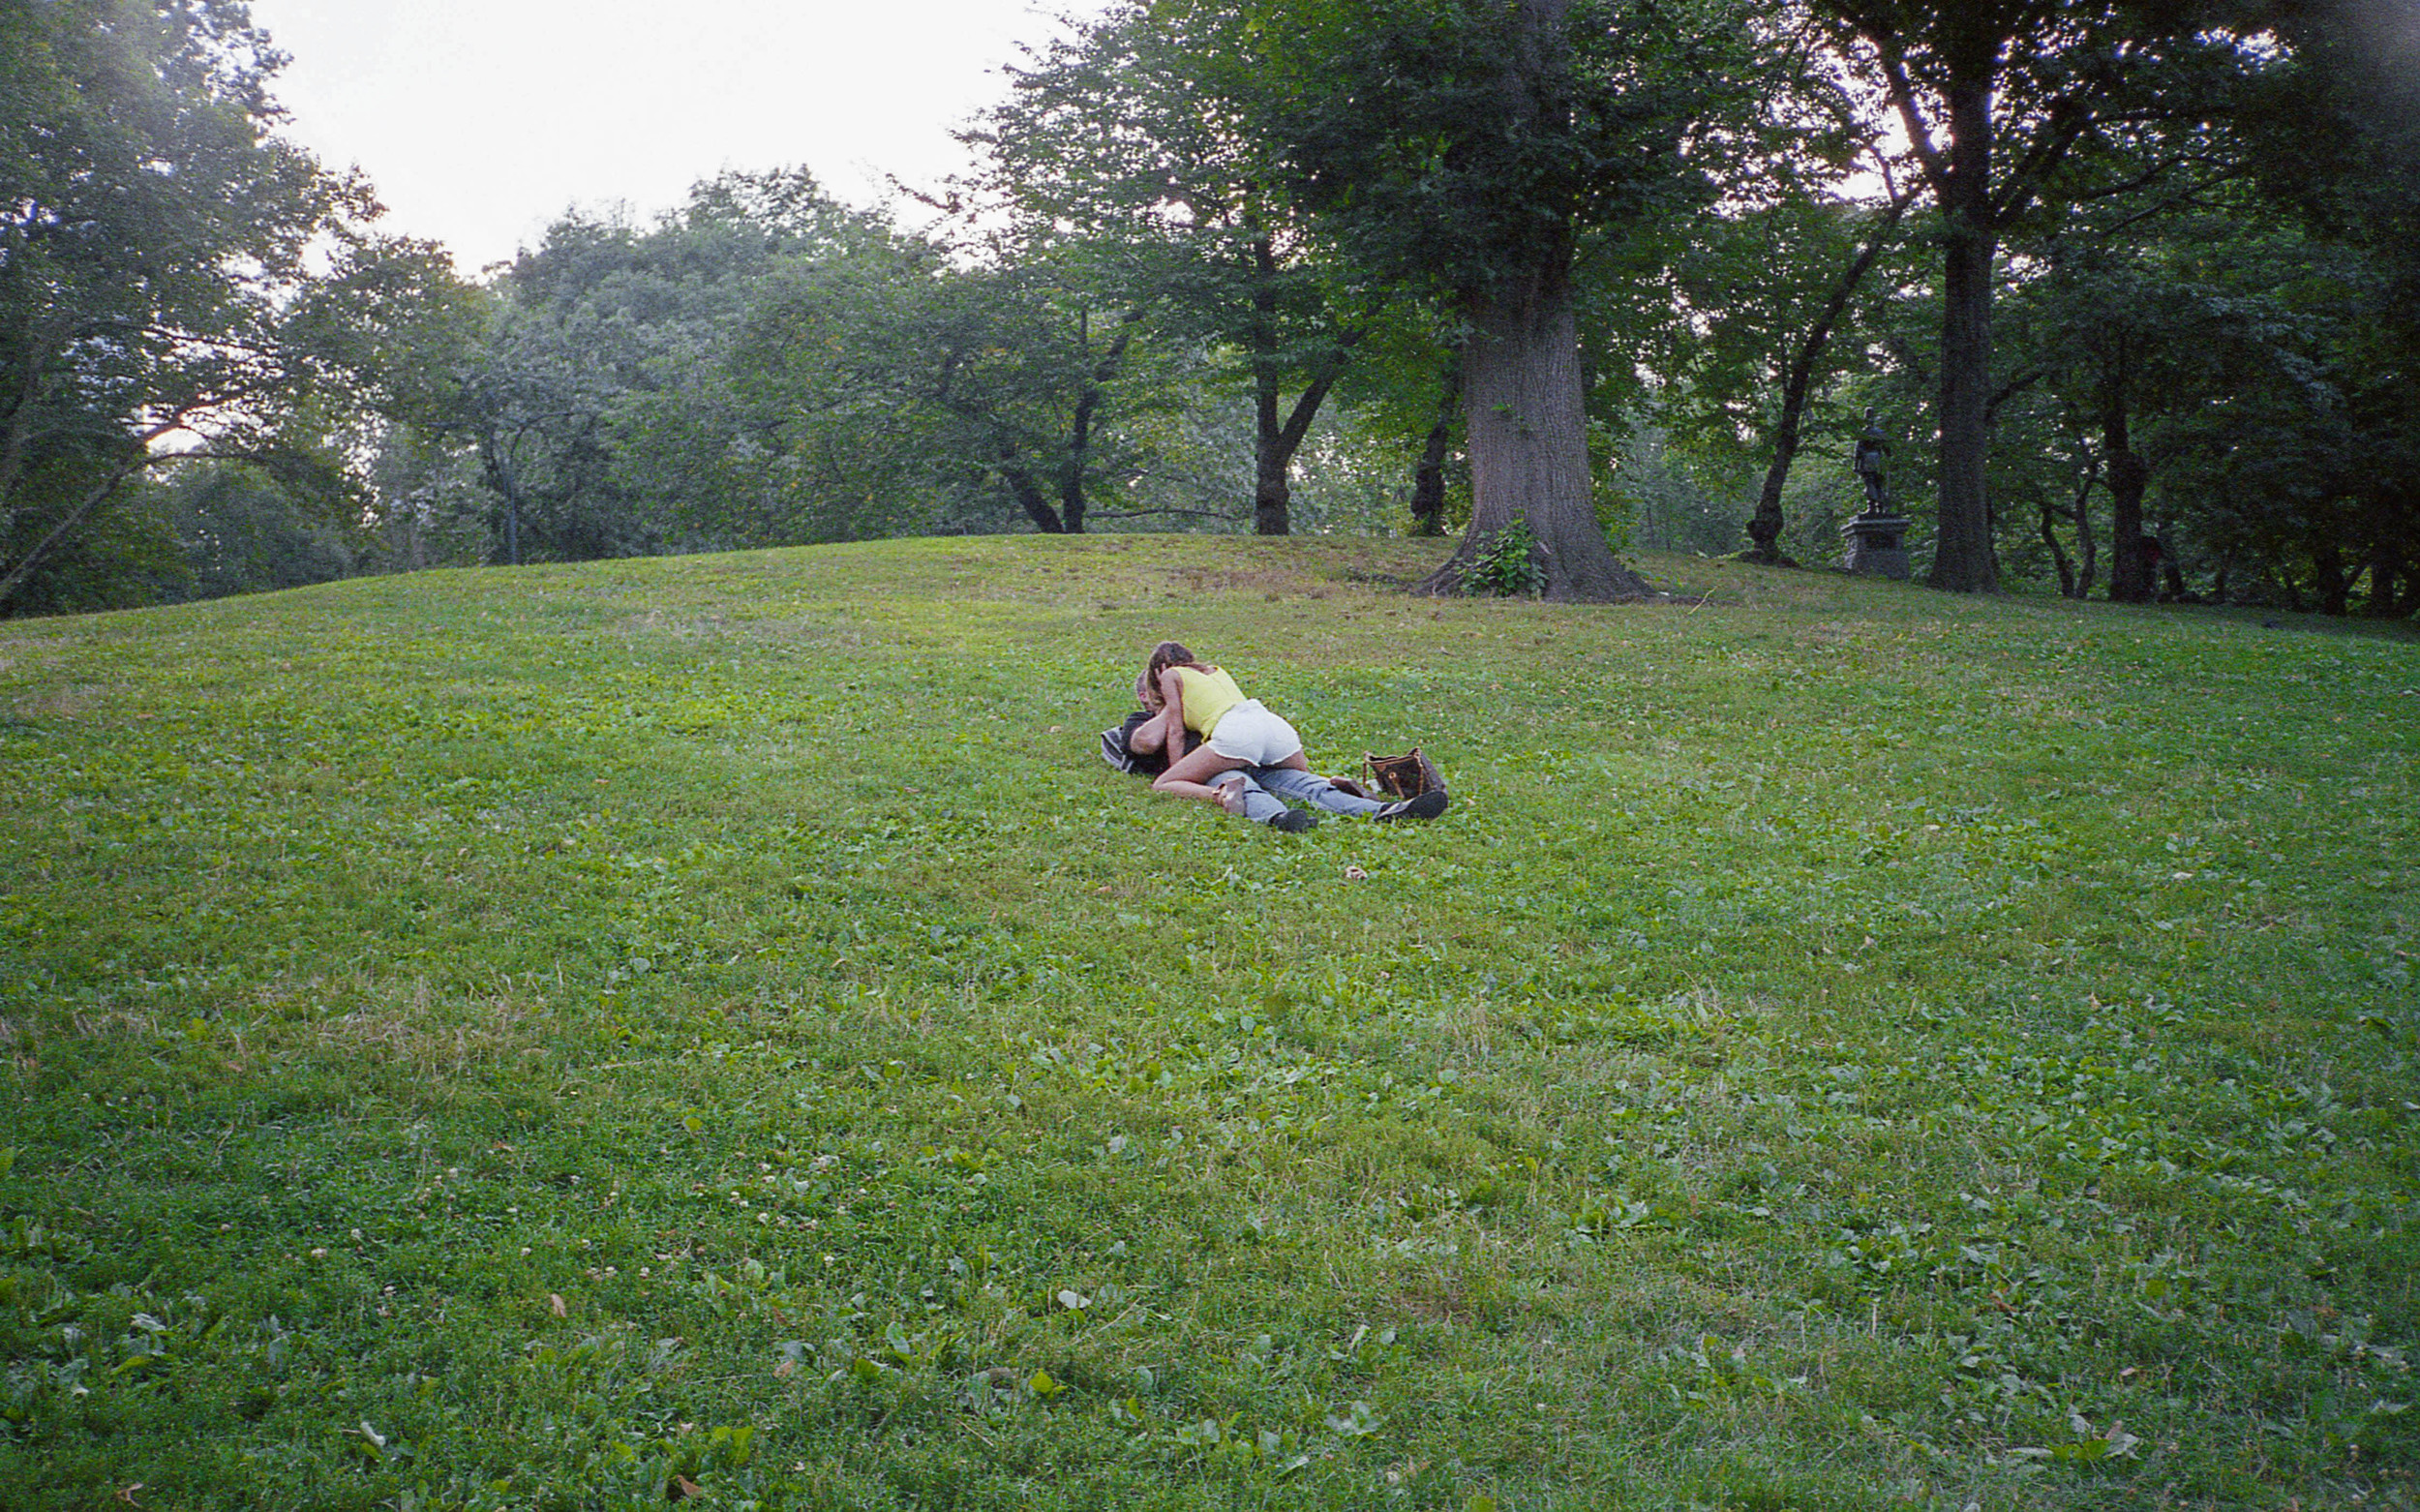 couple in central park.jpg